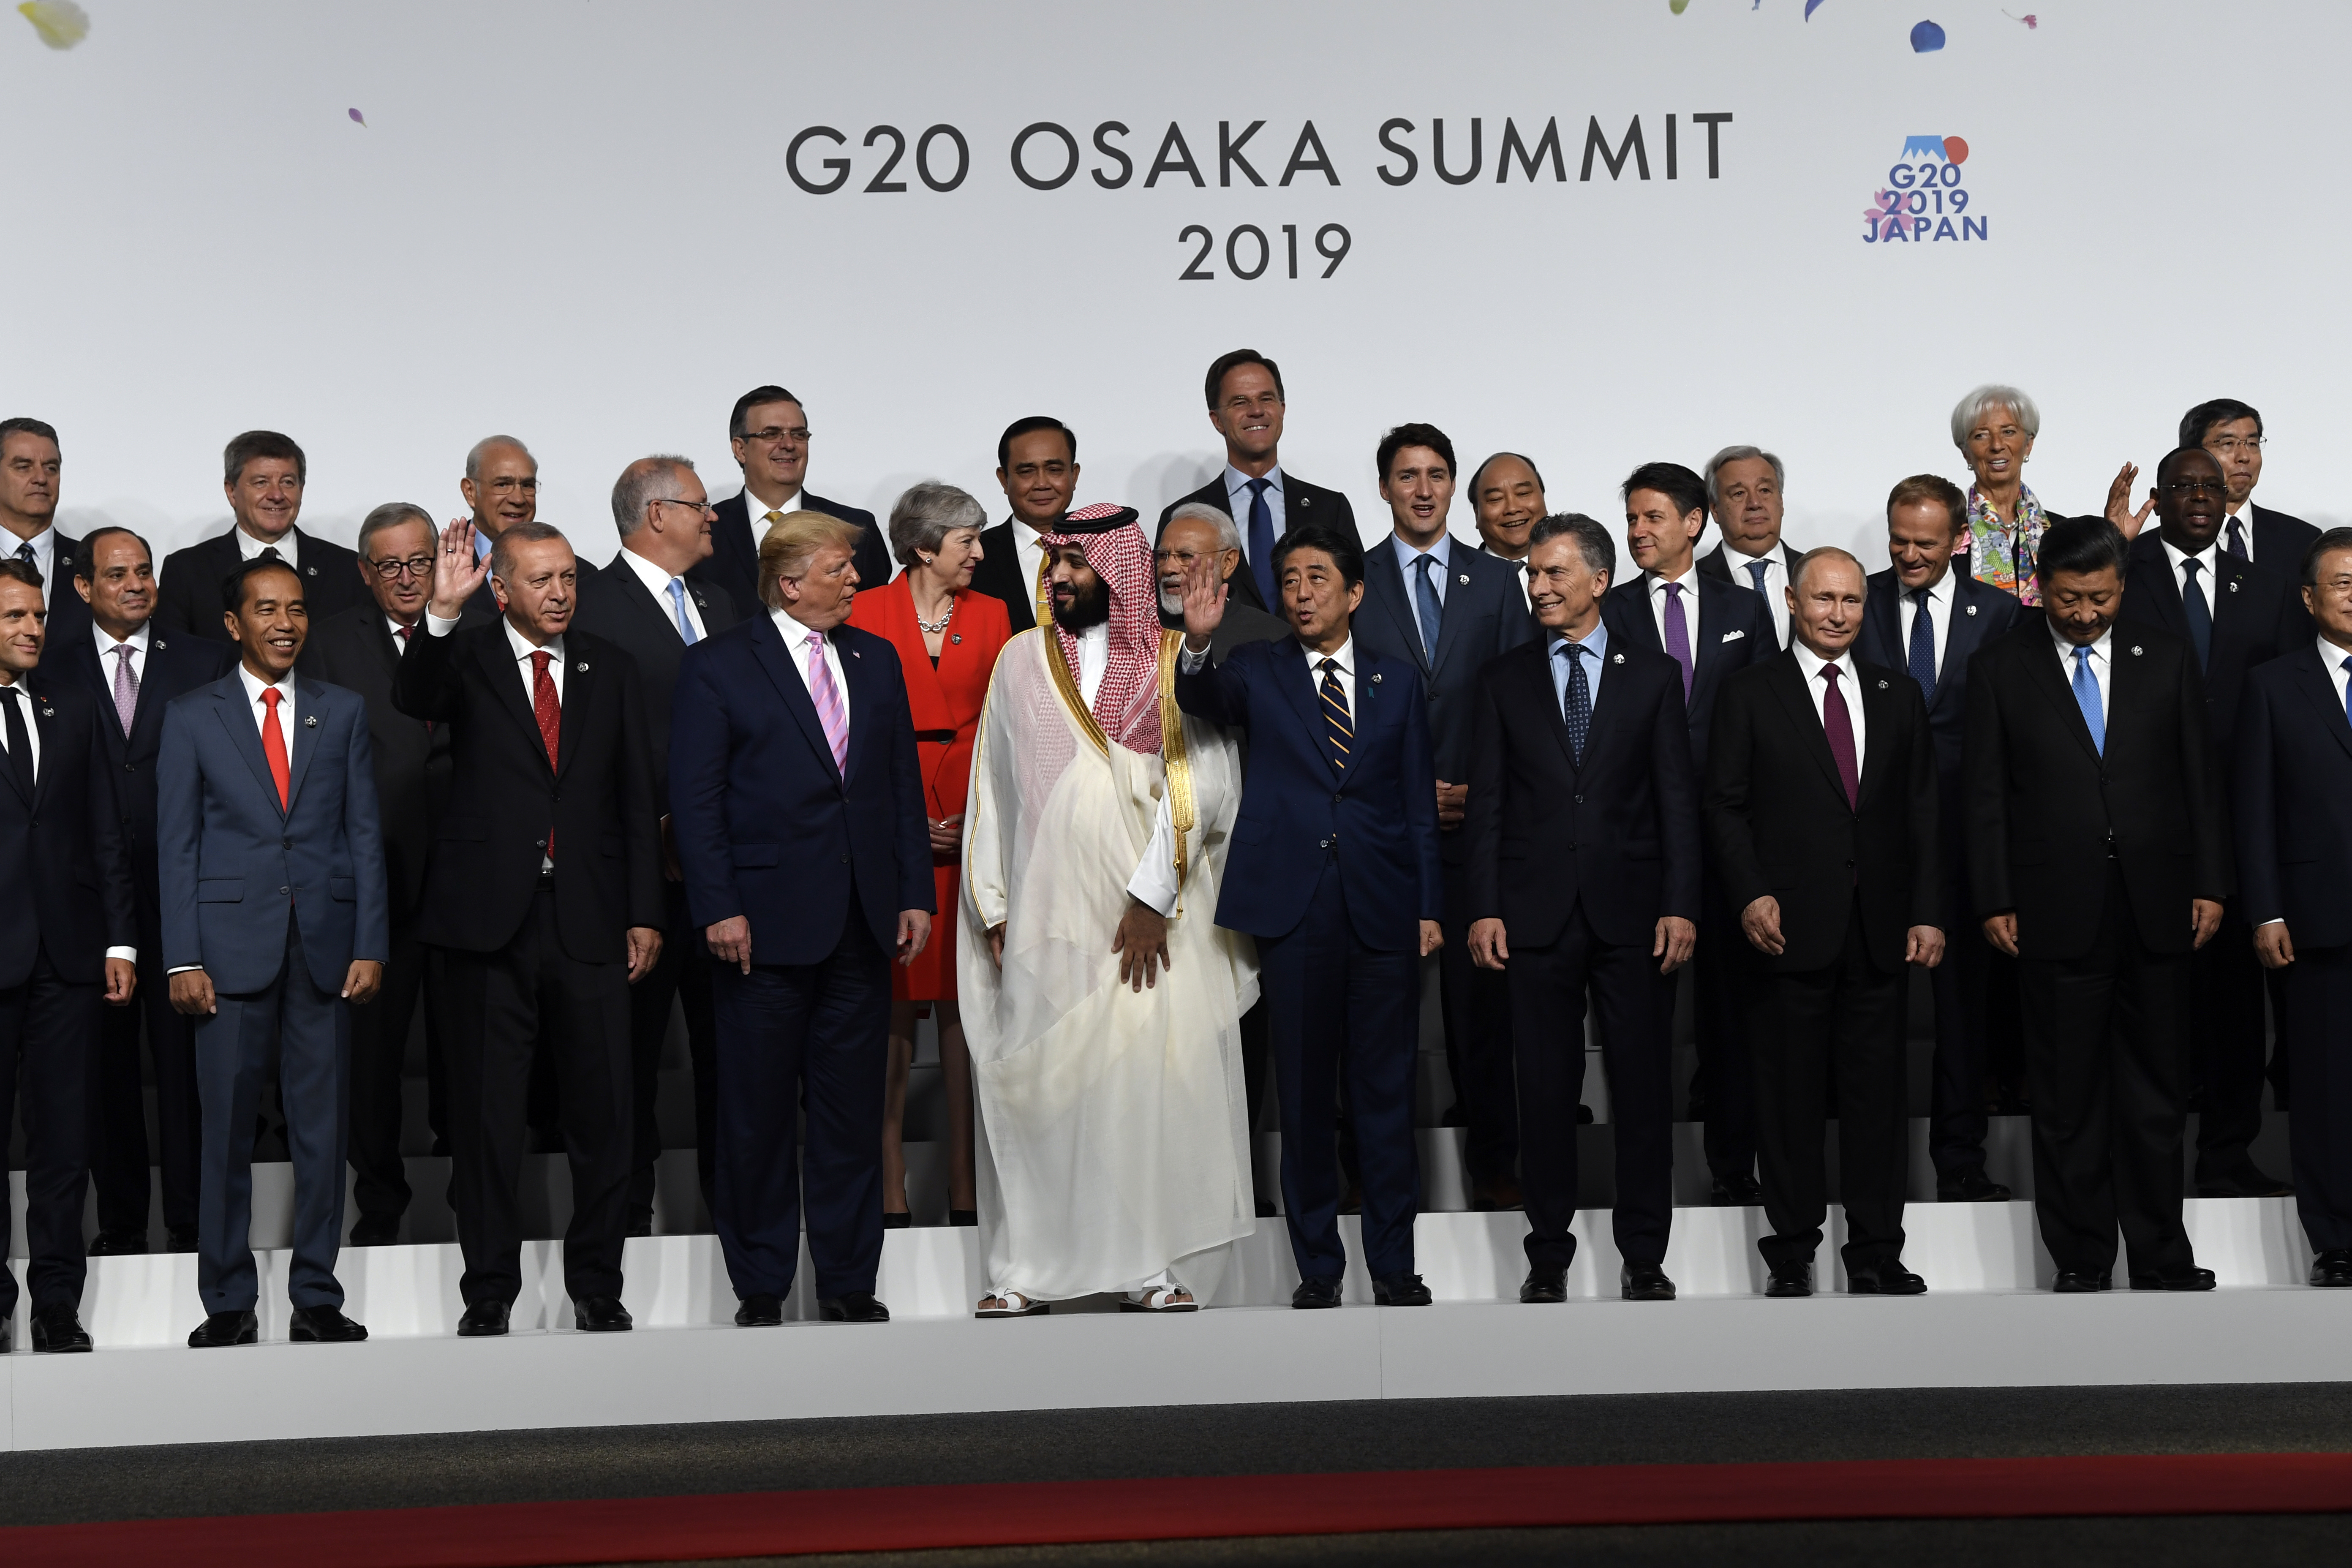 President Donald Trump and other leaders gather for a group photo at the G-20 summit in Osaka, Japan, Friday, June 28, 2019. (AP Photo/Susan Walsh)